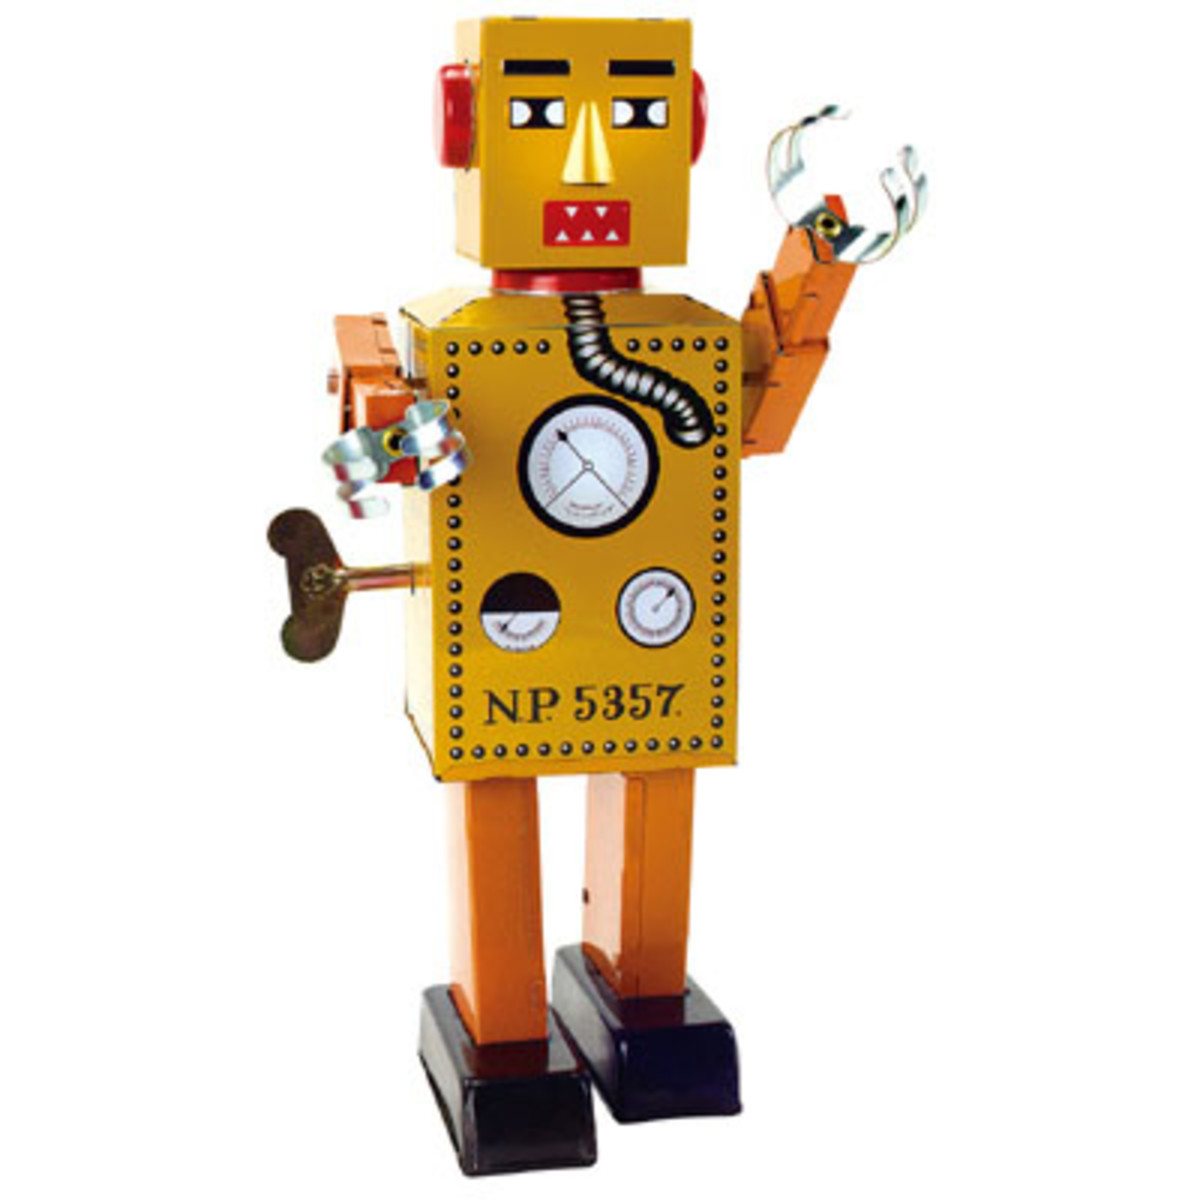 Schylling replica of the first toy robot Lilliput